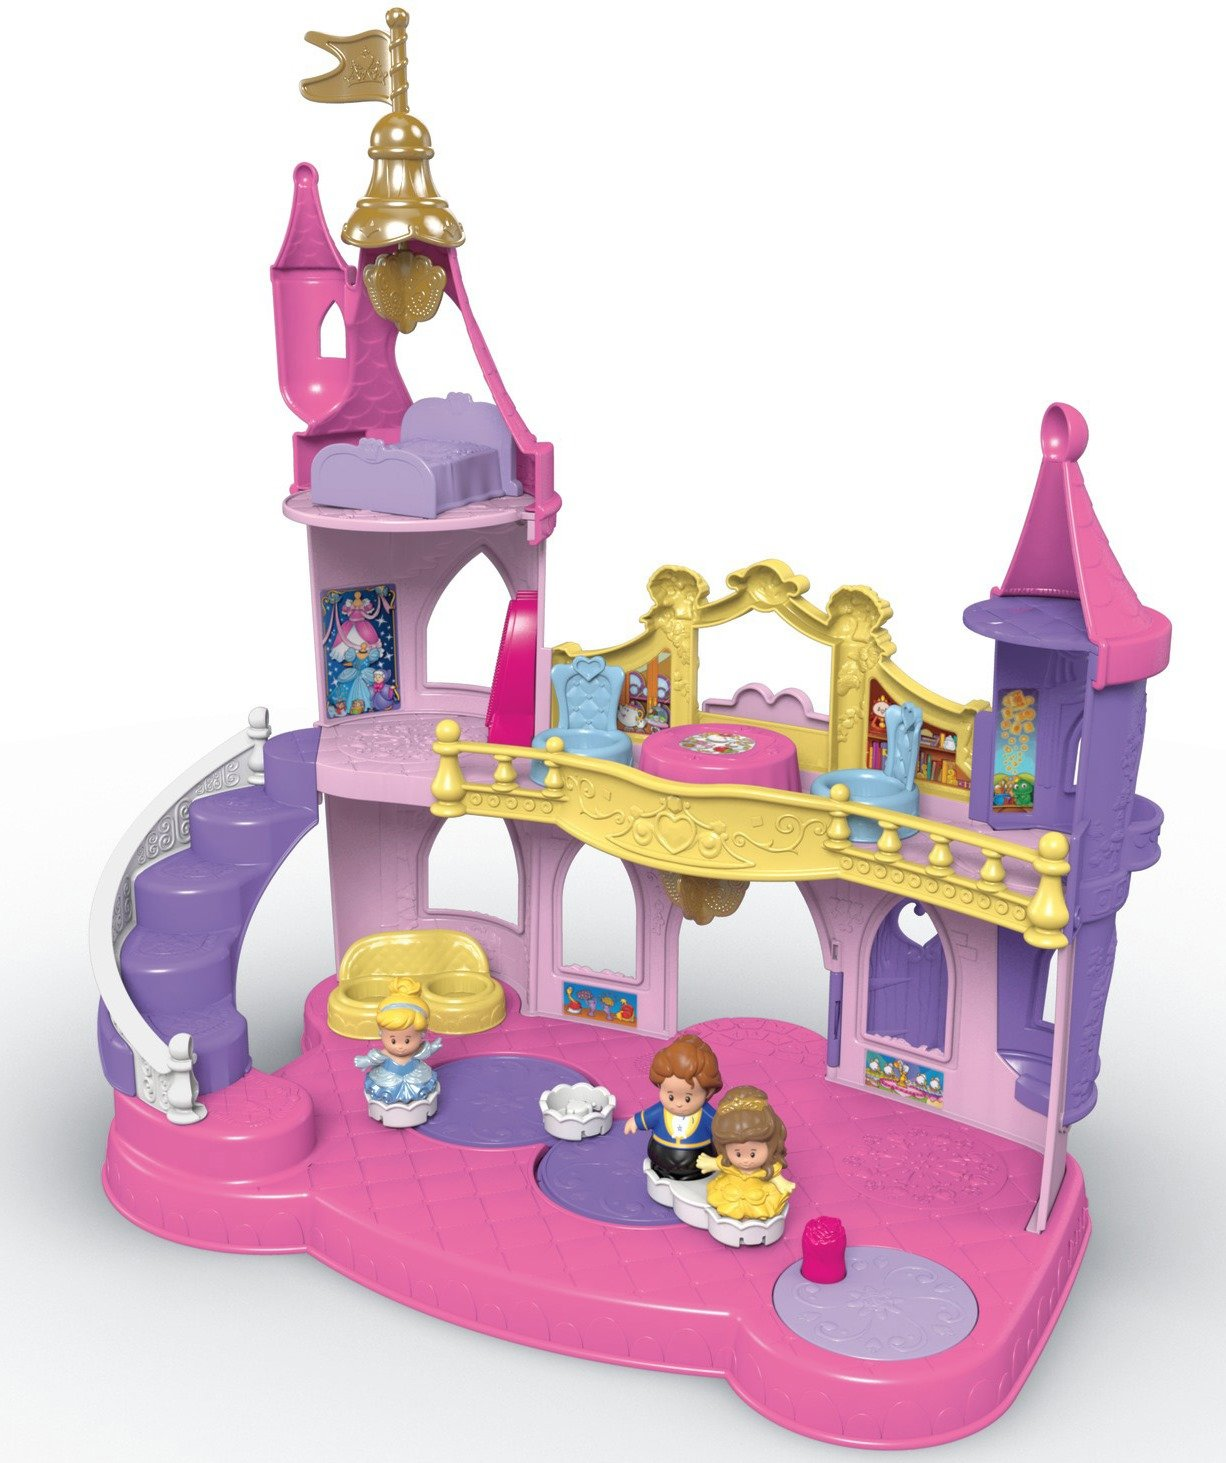 Fisher-Price Little People Disney Princess, Musical Dancing Palace by Fisher-Price (Image #4)